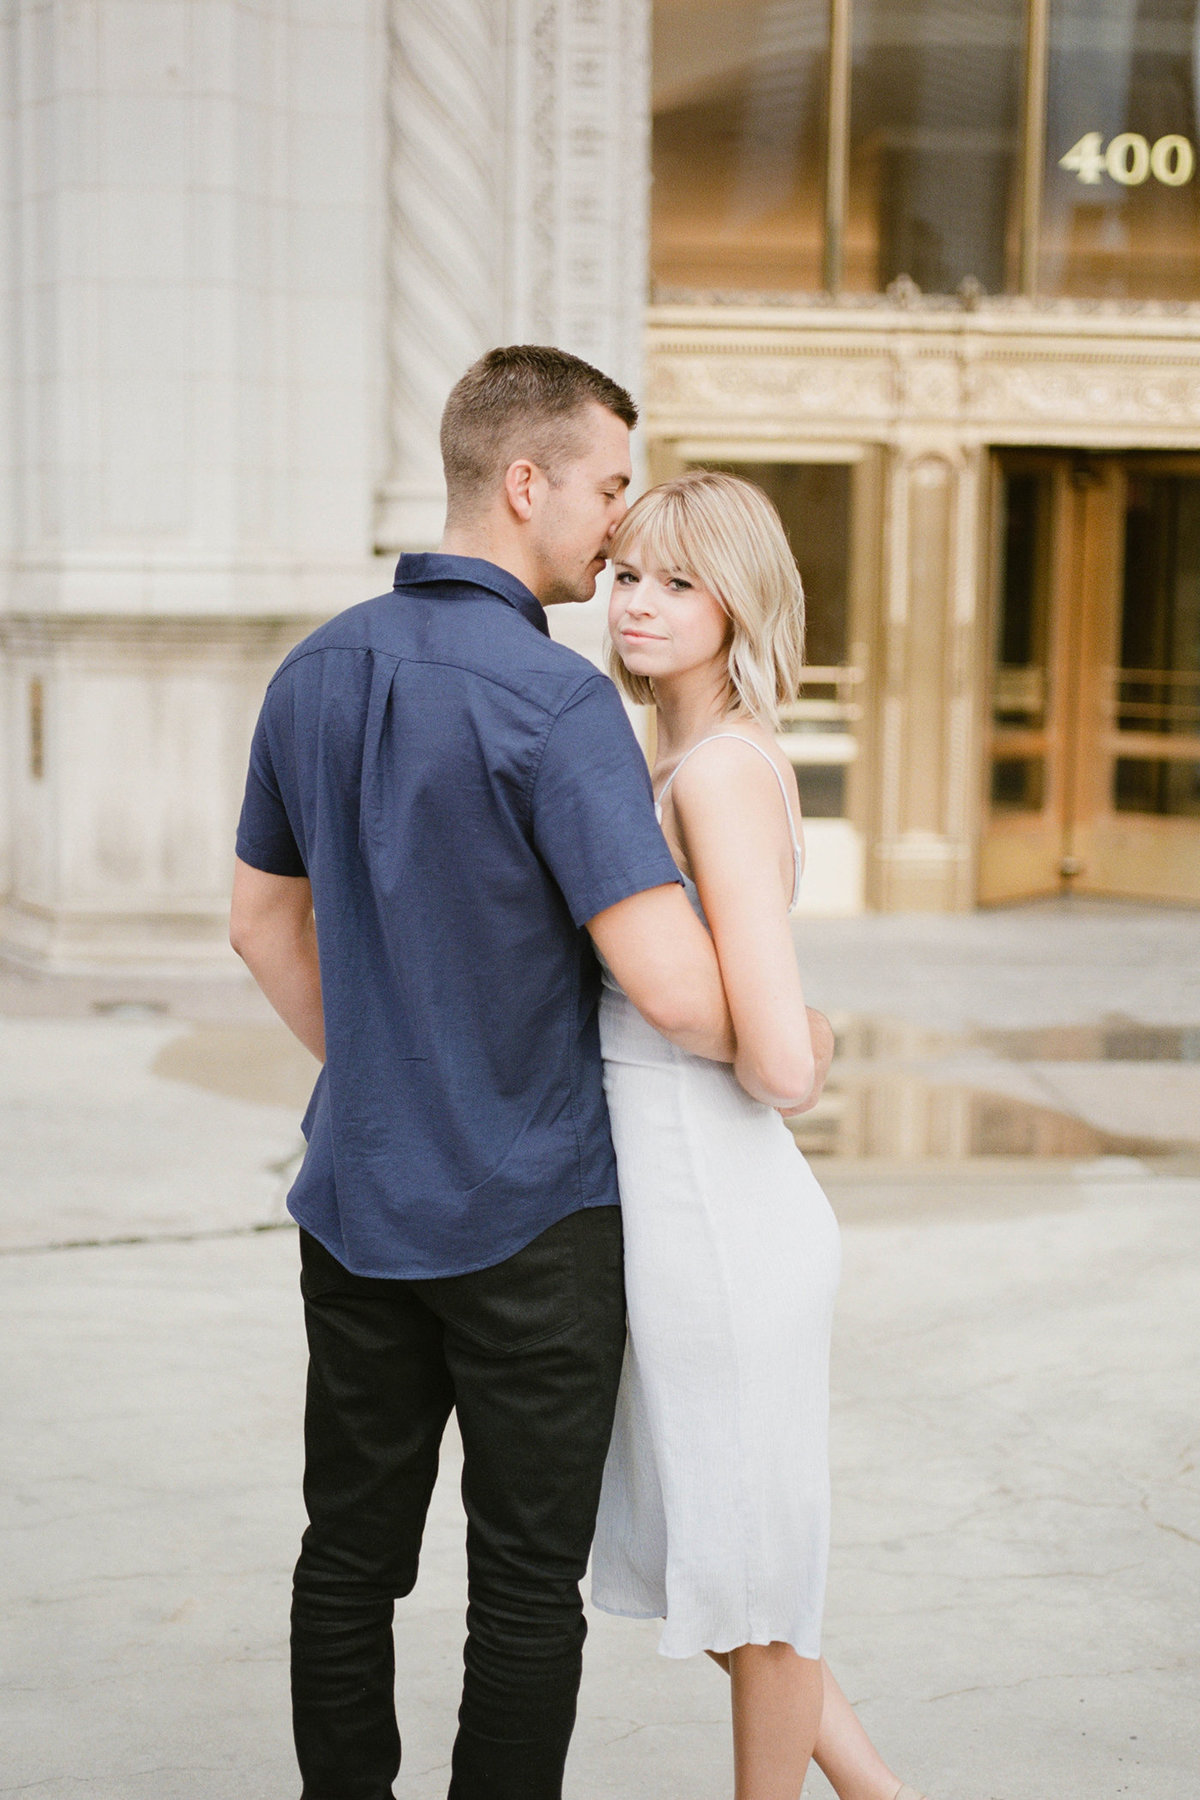 Chicago Wedding Photographer - Fine Art Film Photographer - Sarah Sunstrom - Sam + Morgan - Engagement Session - 26